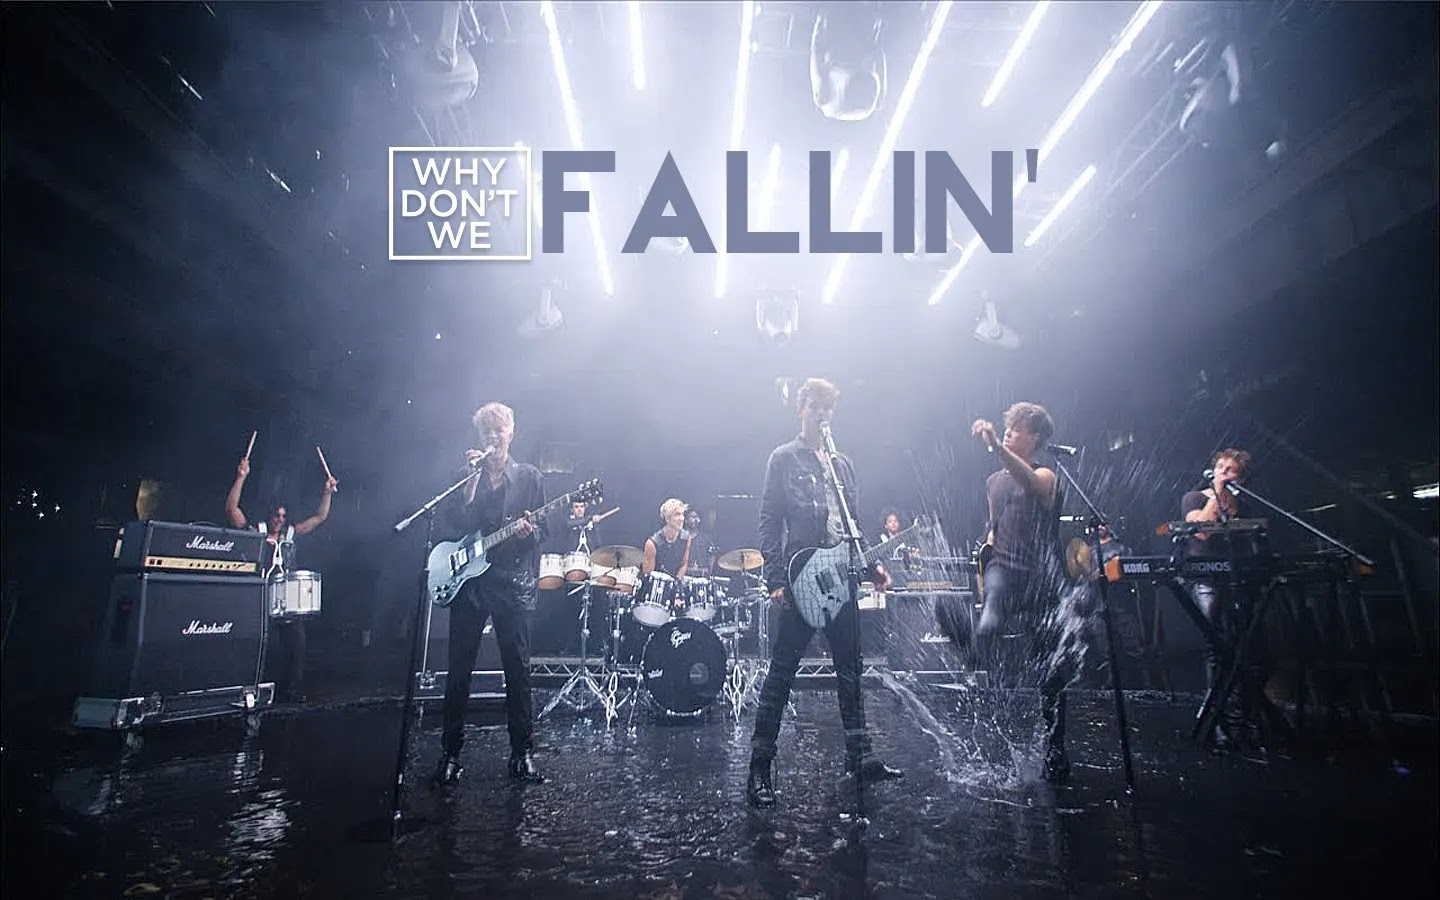 Fallin' - Why Don't We Band